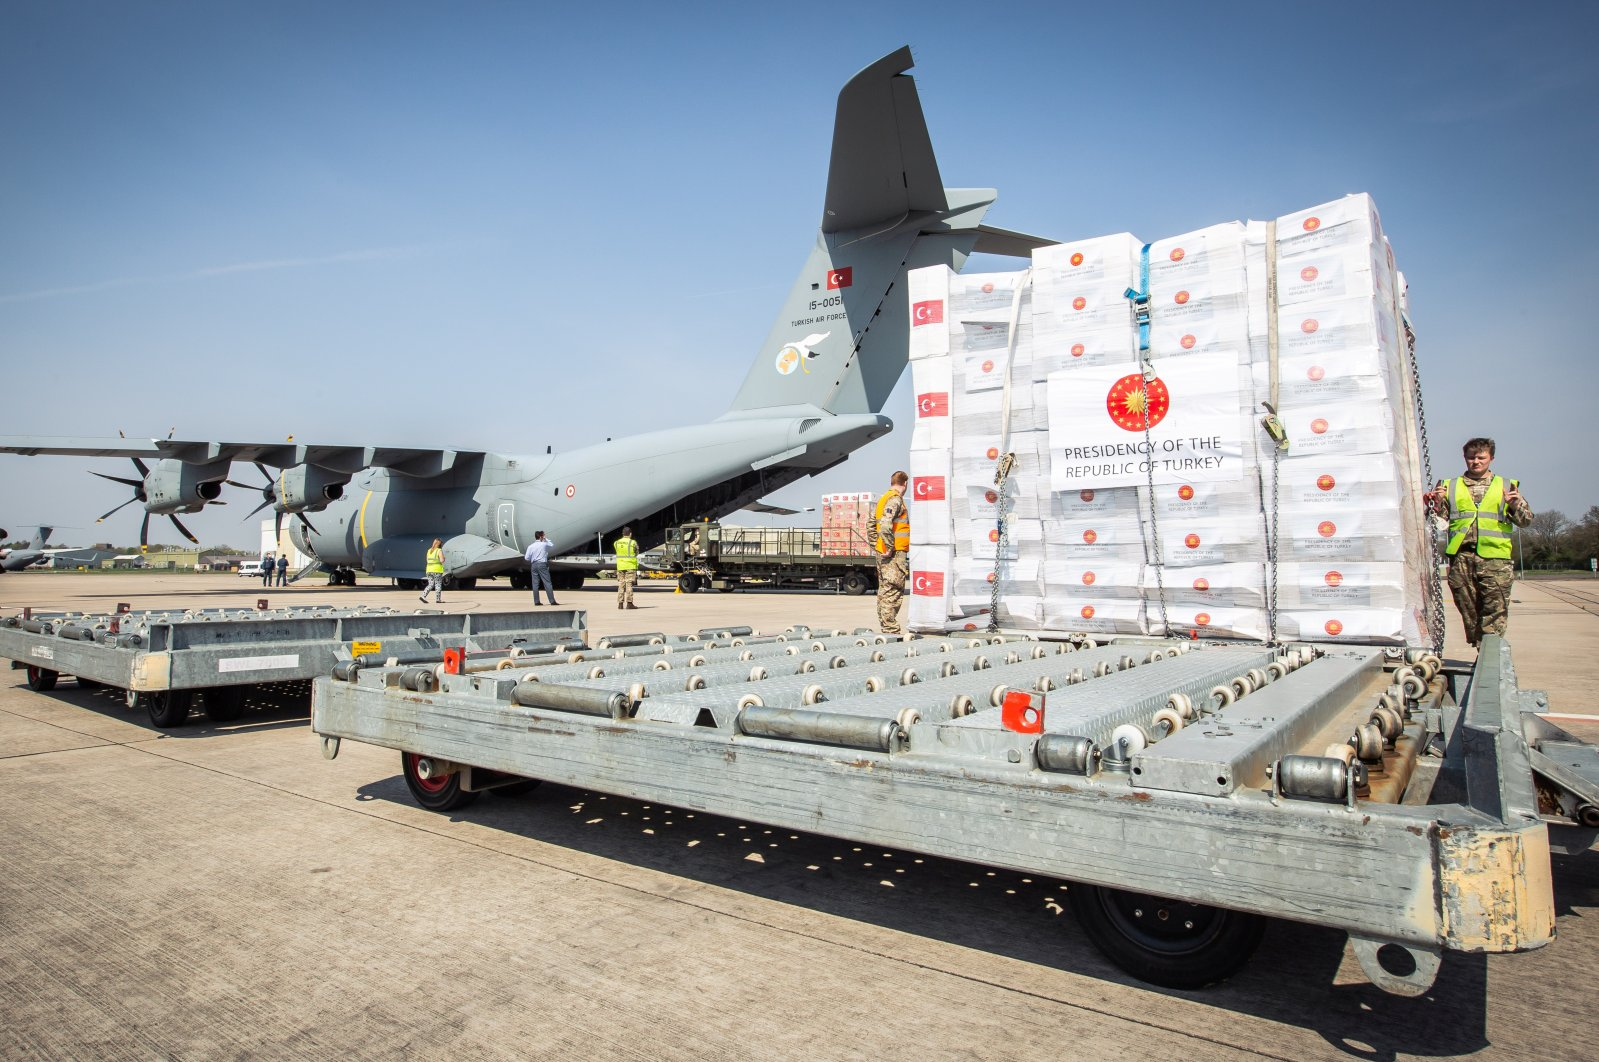 Crucial supplies of personal protective equipment for medical staff are delivered from Turkey to a Royal Air Force base for distribution around the country amid the coronavirus outbreak, Carterton, Britain, April 10, 2020. (Reuters Photo)